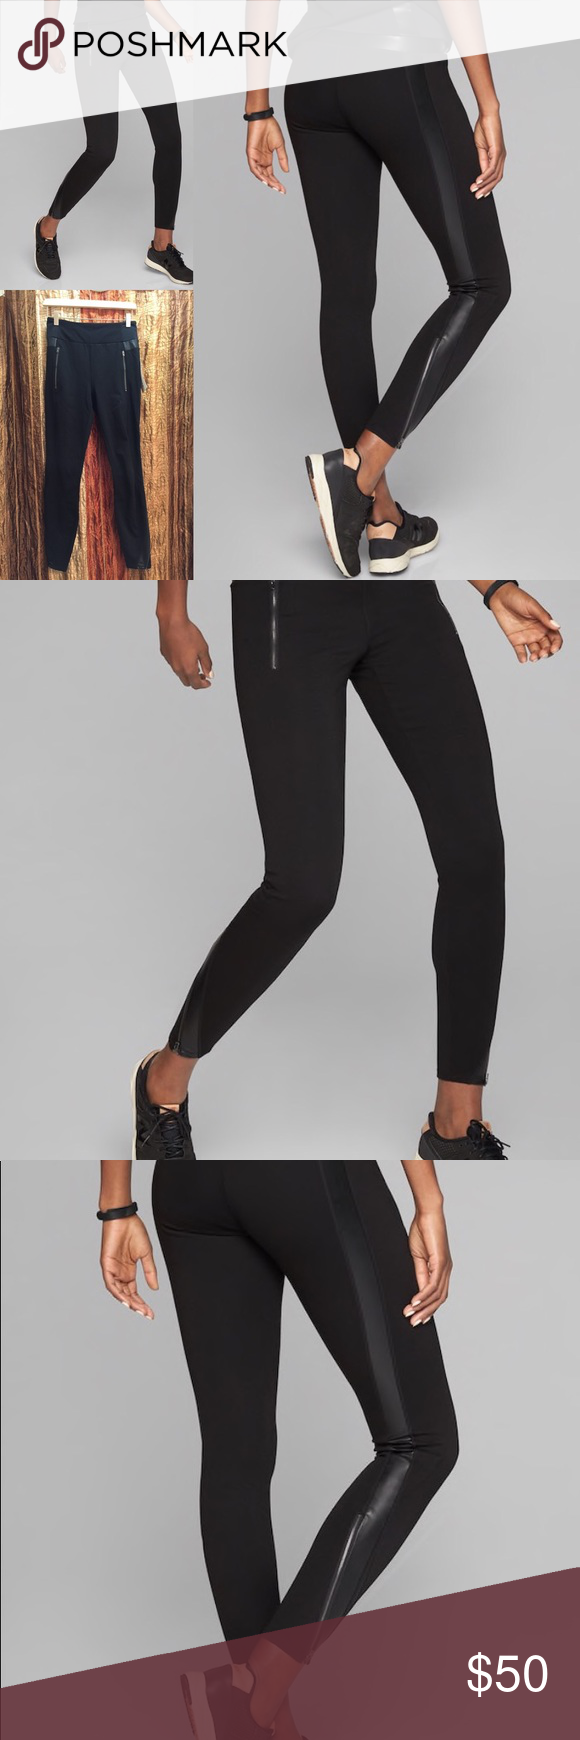 5080272ca12d02 Athleta Luxe Ponte Legging Fitted, High rise Fits next to the skin, Sits  just